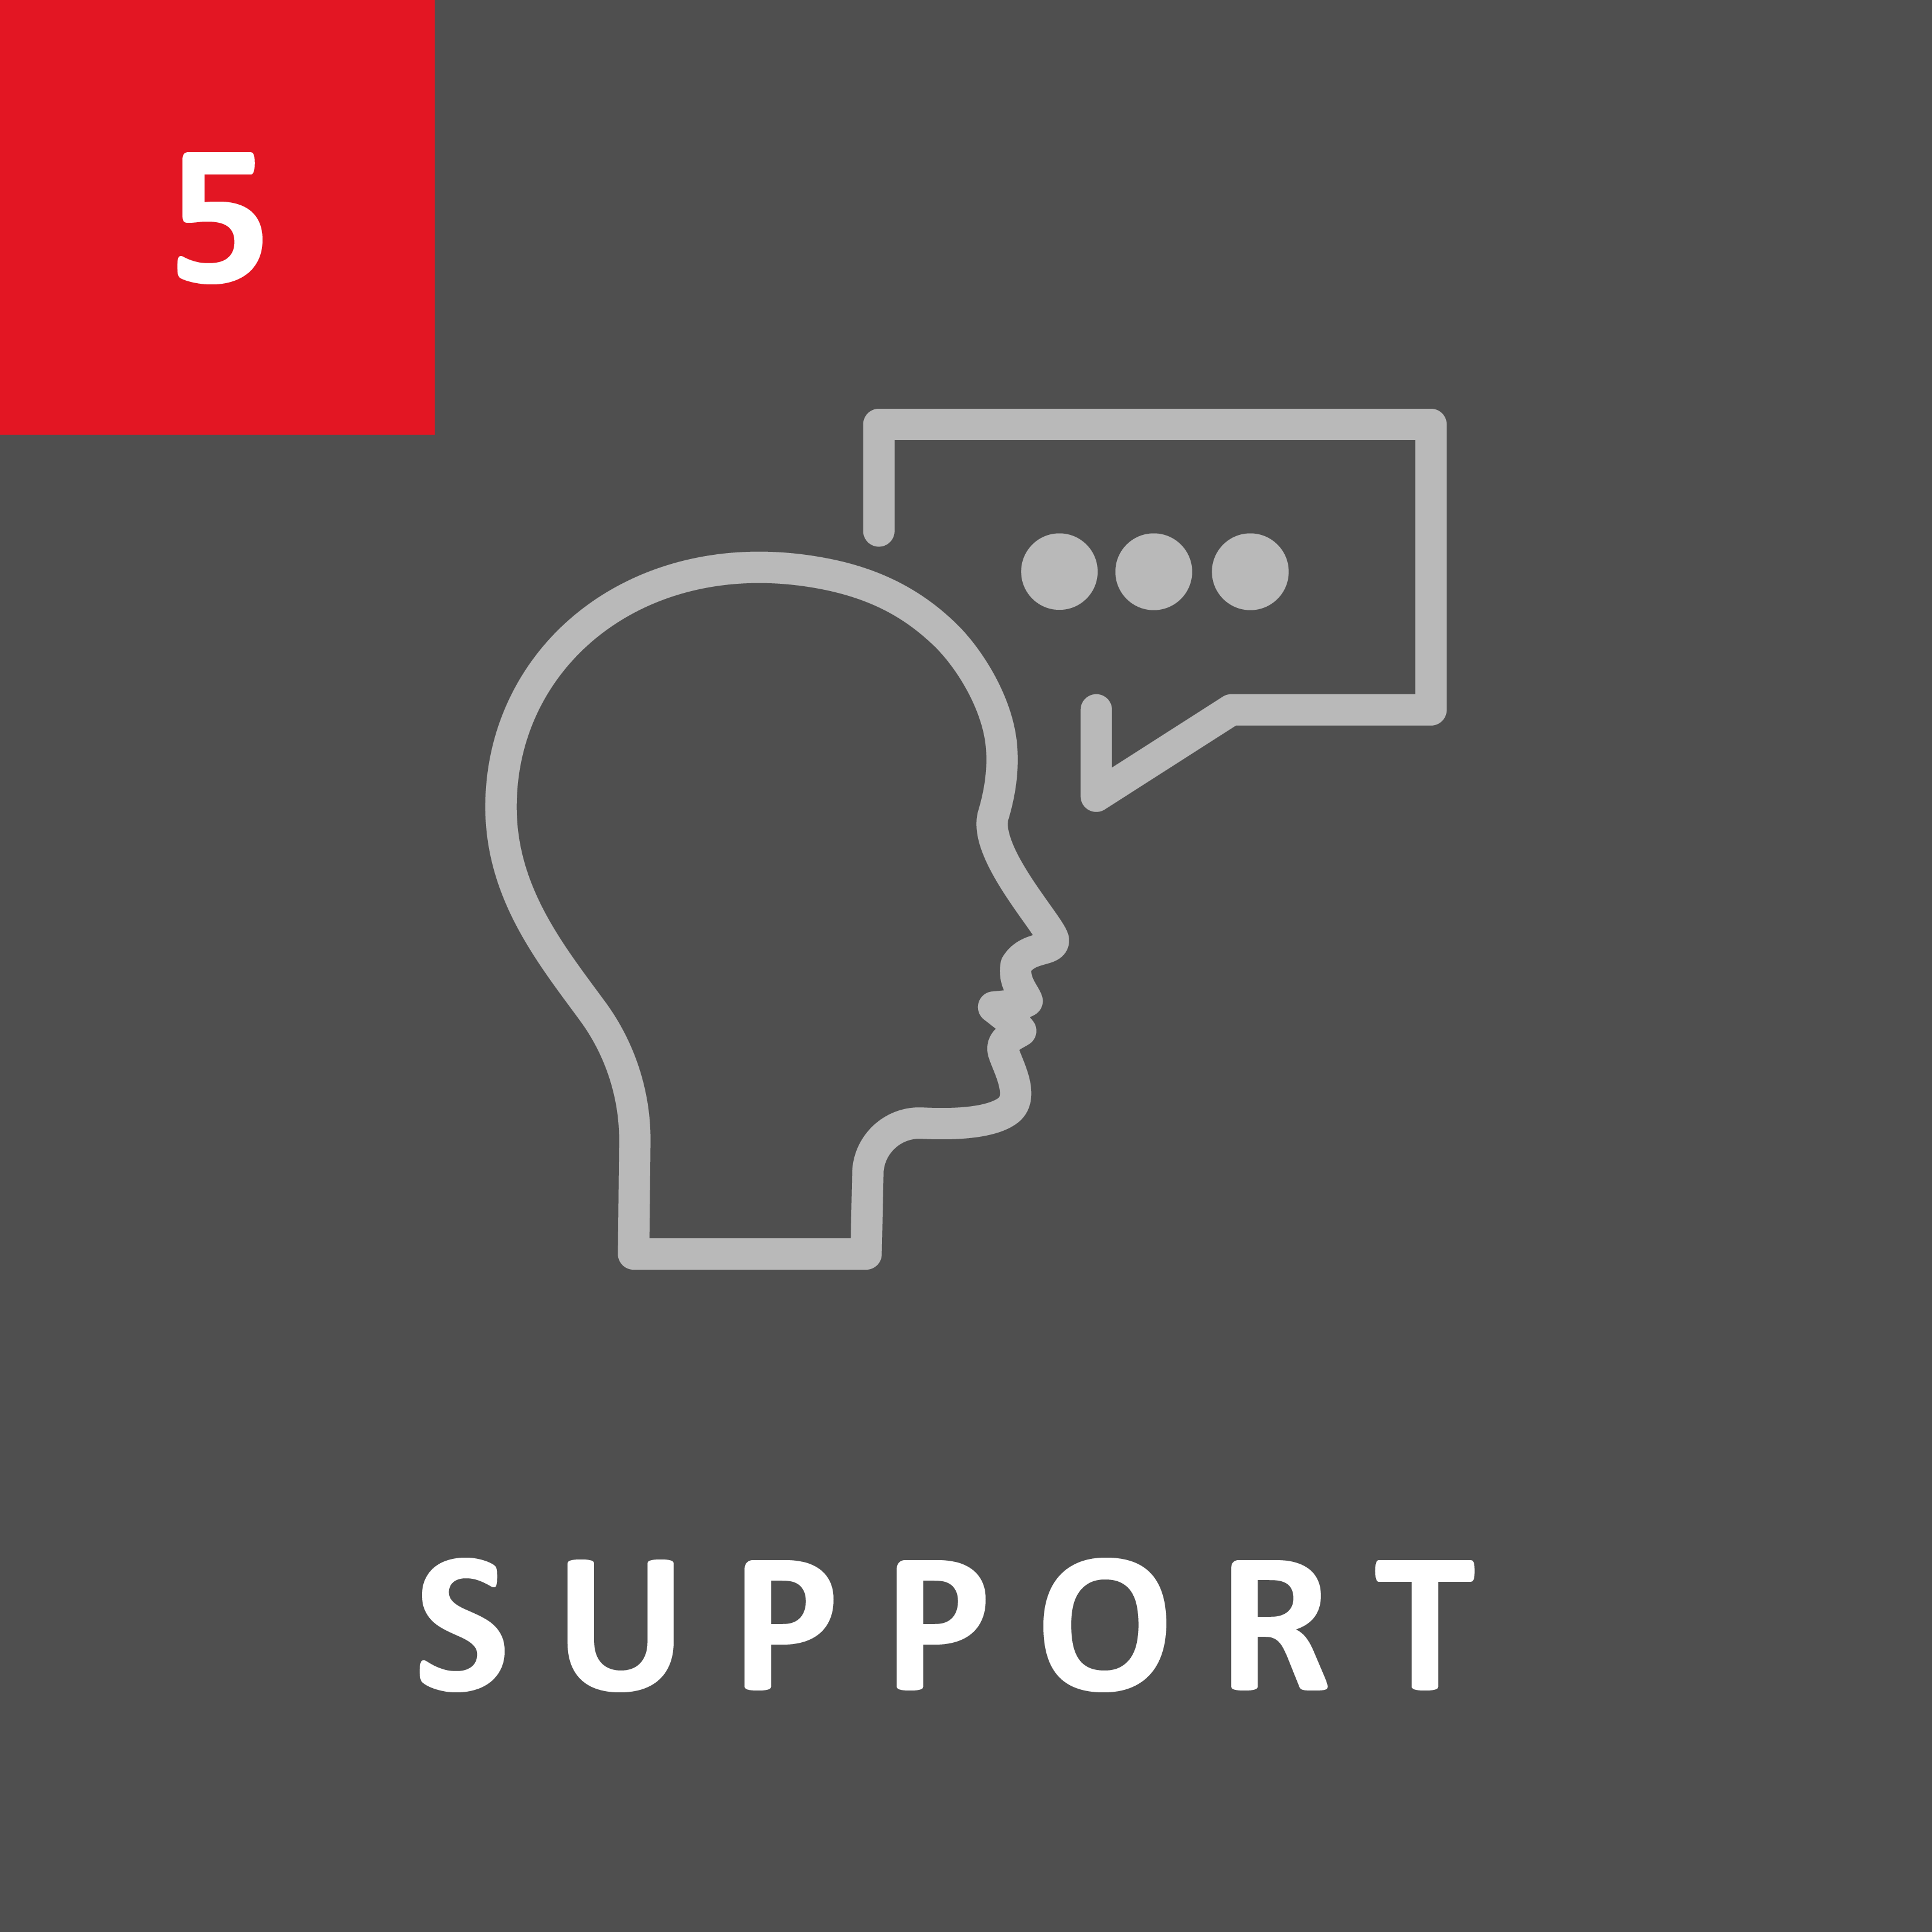 Stage two of process is support